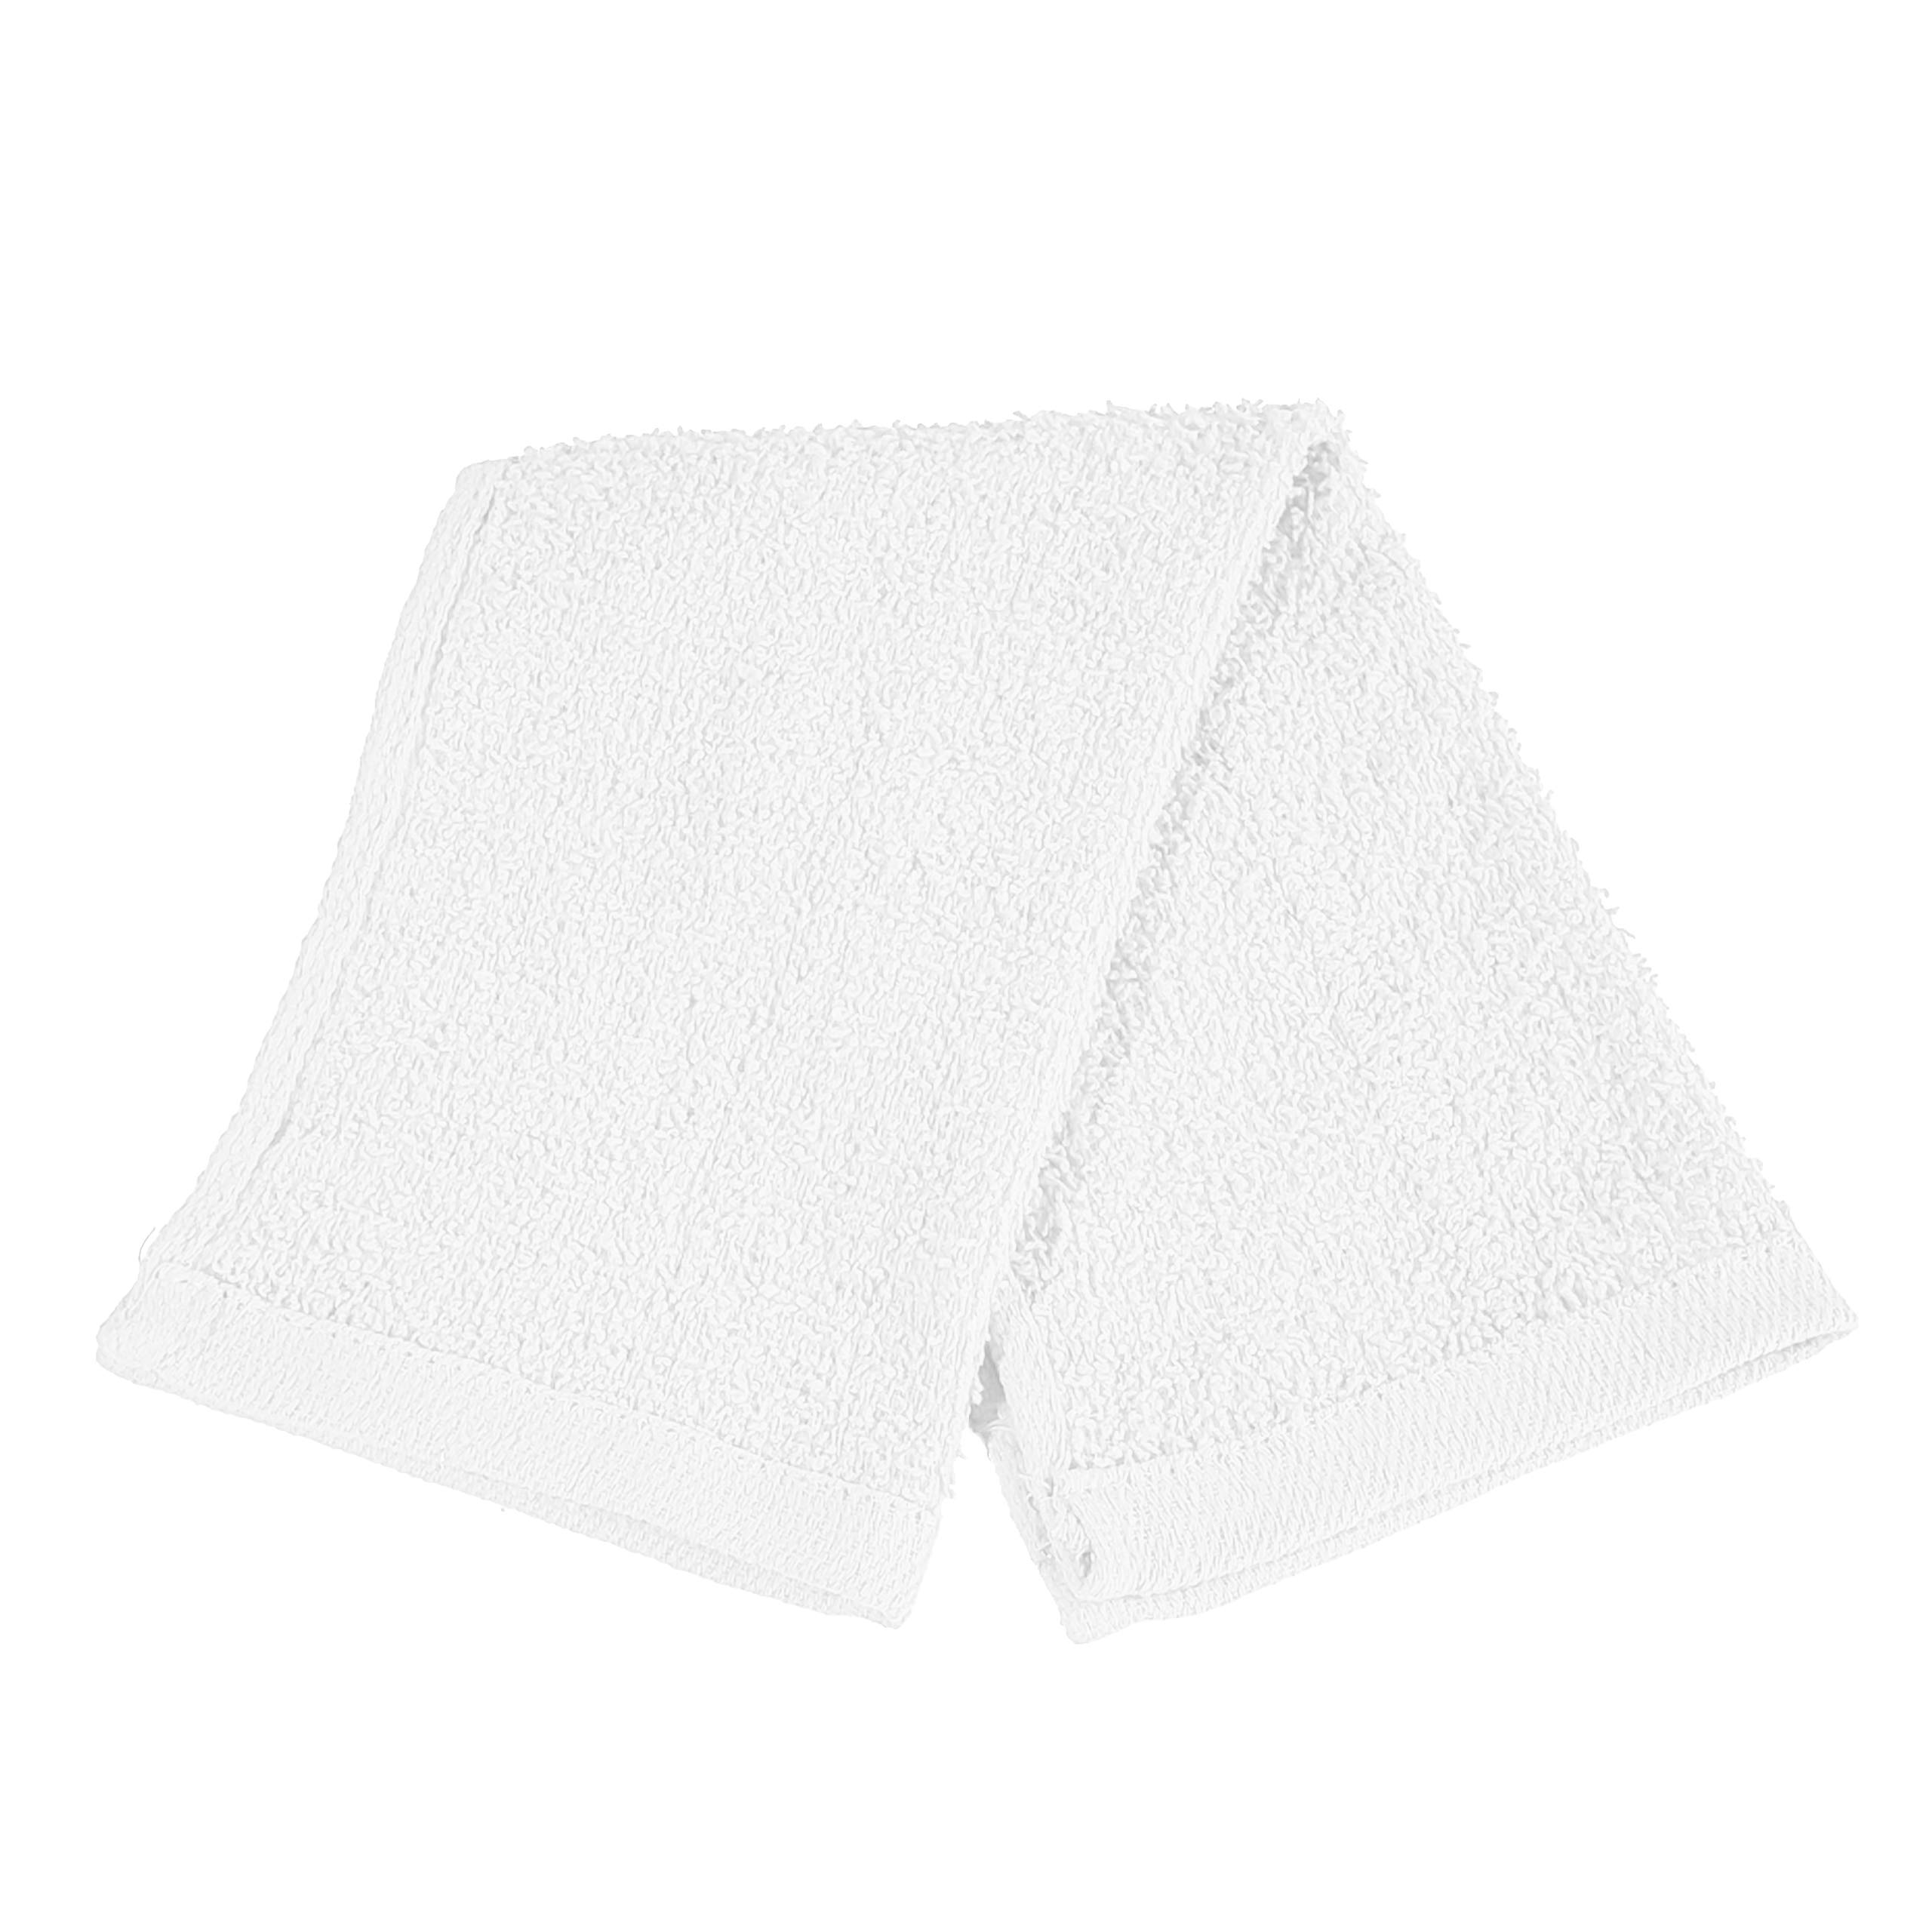 Set of 24- Affordable Cheap Rally Towels White